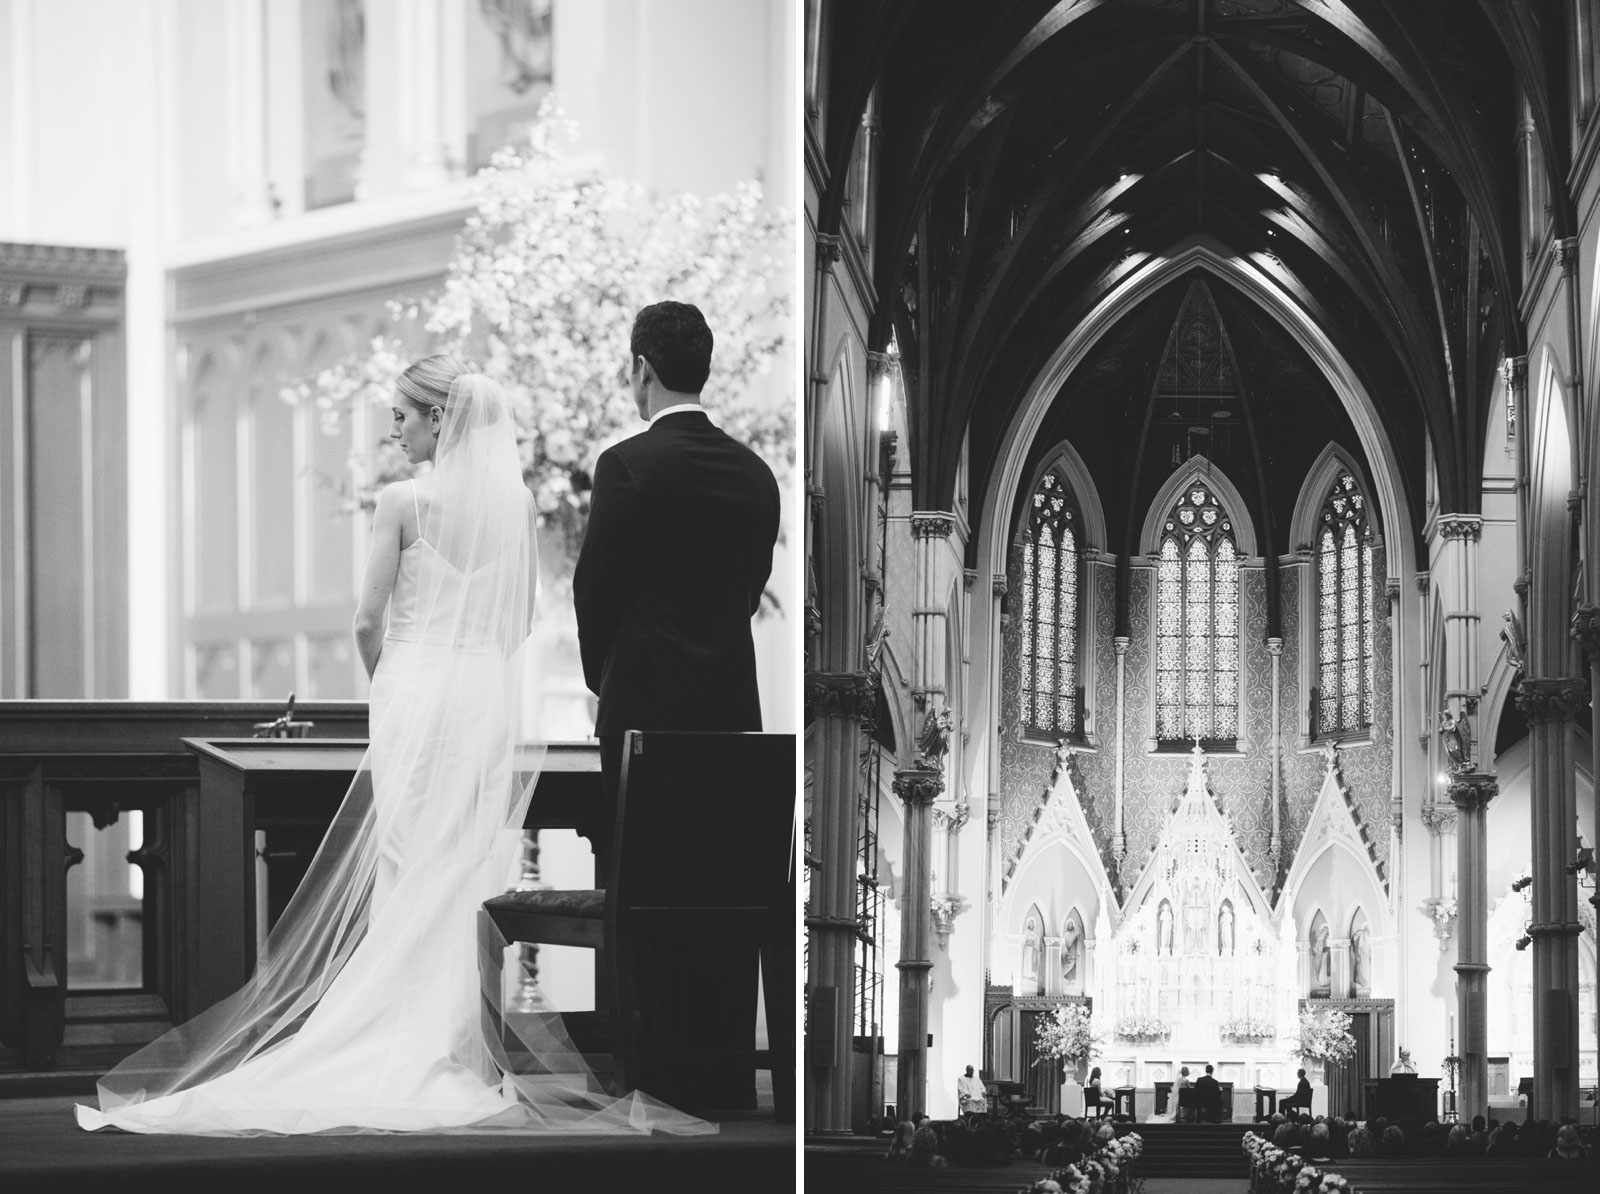 black and white shots of bride and groom standing at altar at large cathedral with vaulted ceiling